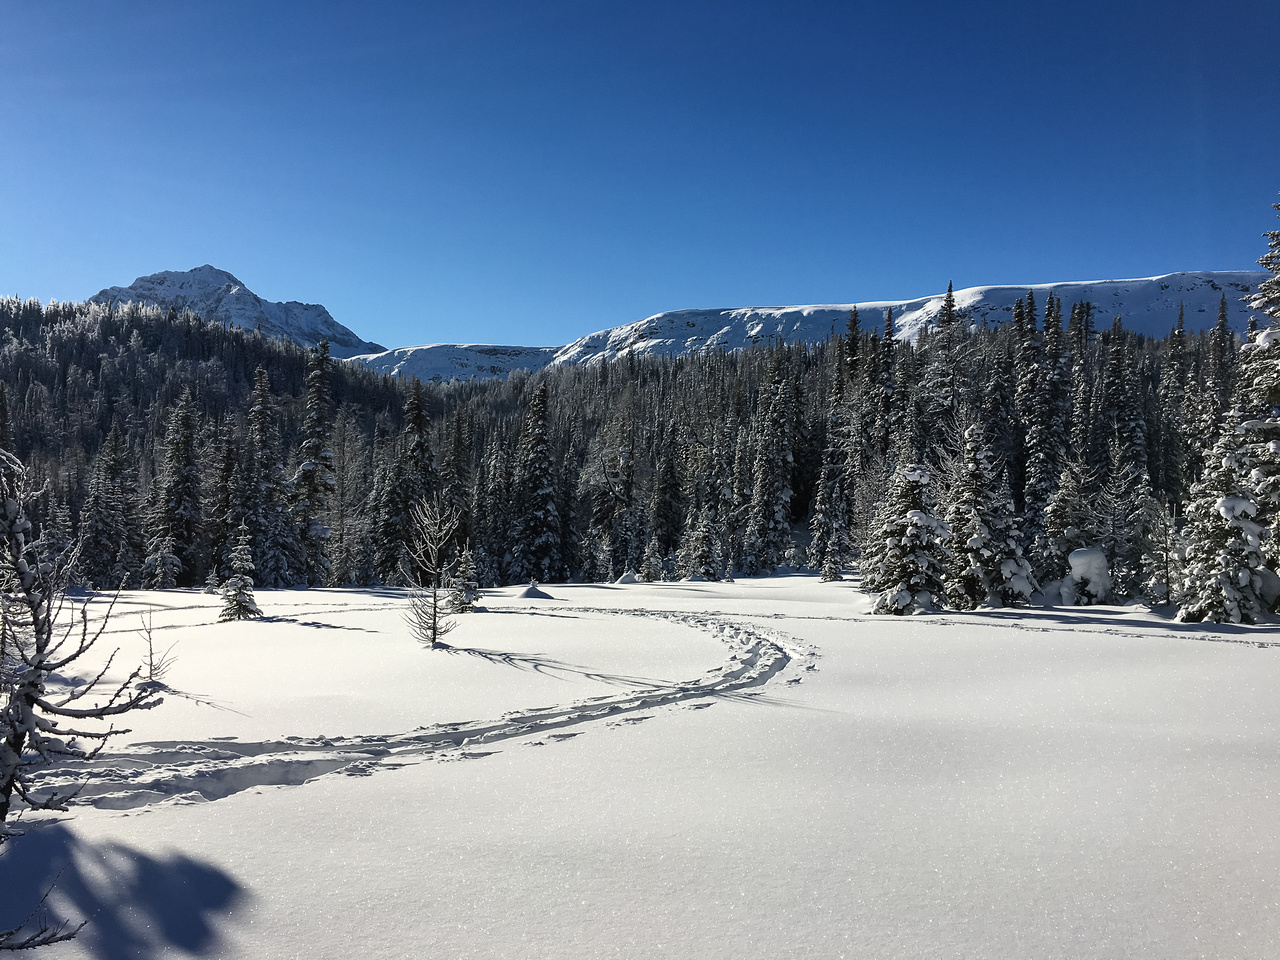 After a solid 2+ hours of skiing up the rather dull Healy Creek trail, these are the first views of The Monarch (L) with the Monarch Ramparts stretching out to the right.